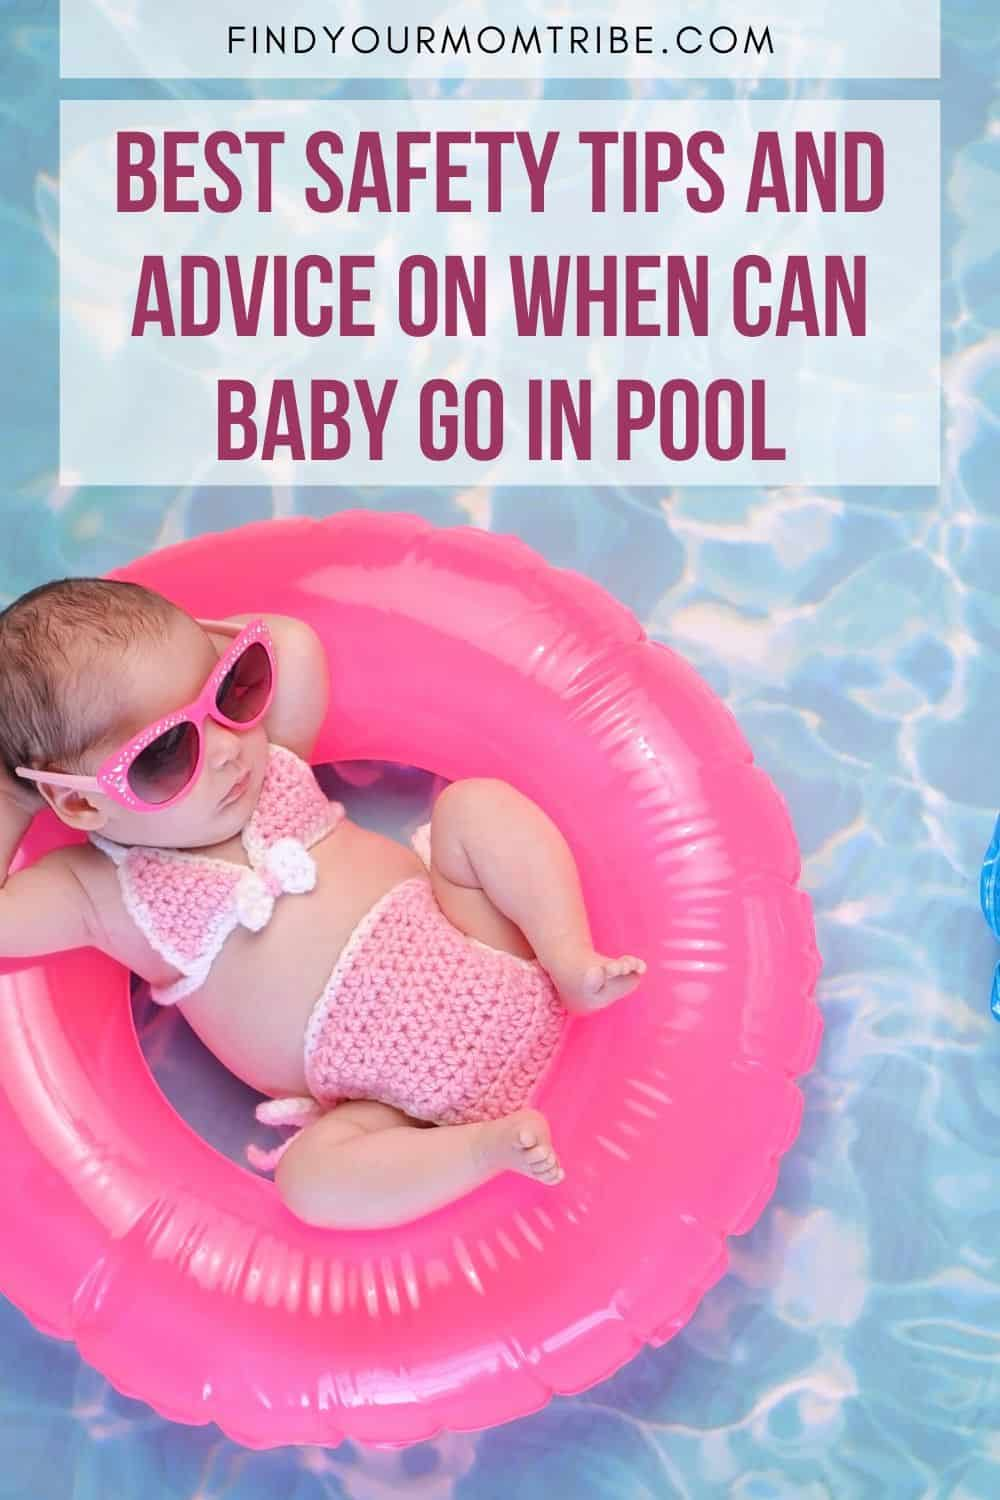 Best Safety Tips And Advice On When Can Baby Go In Pool Pinterest